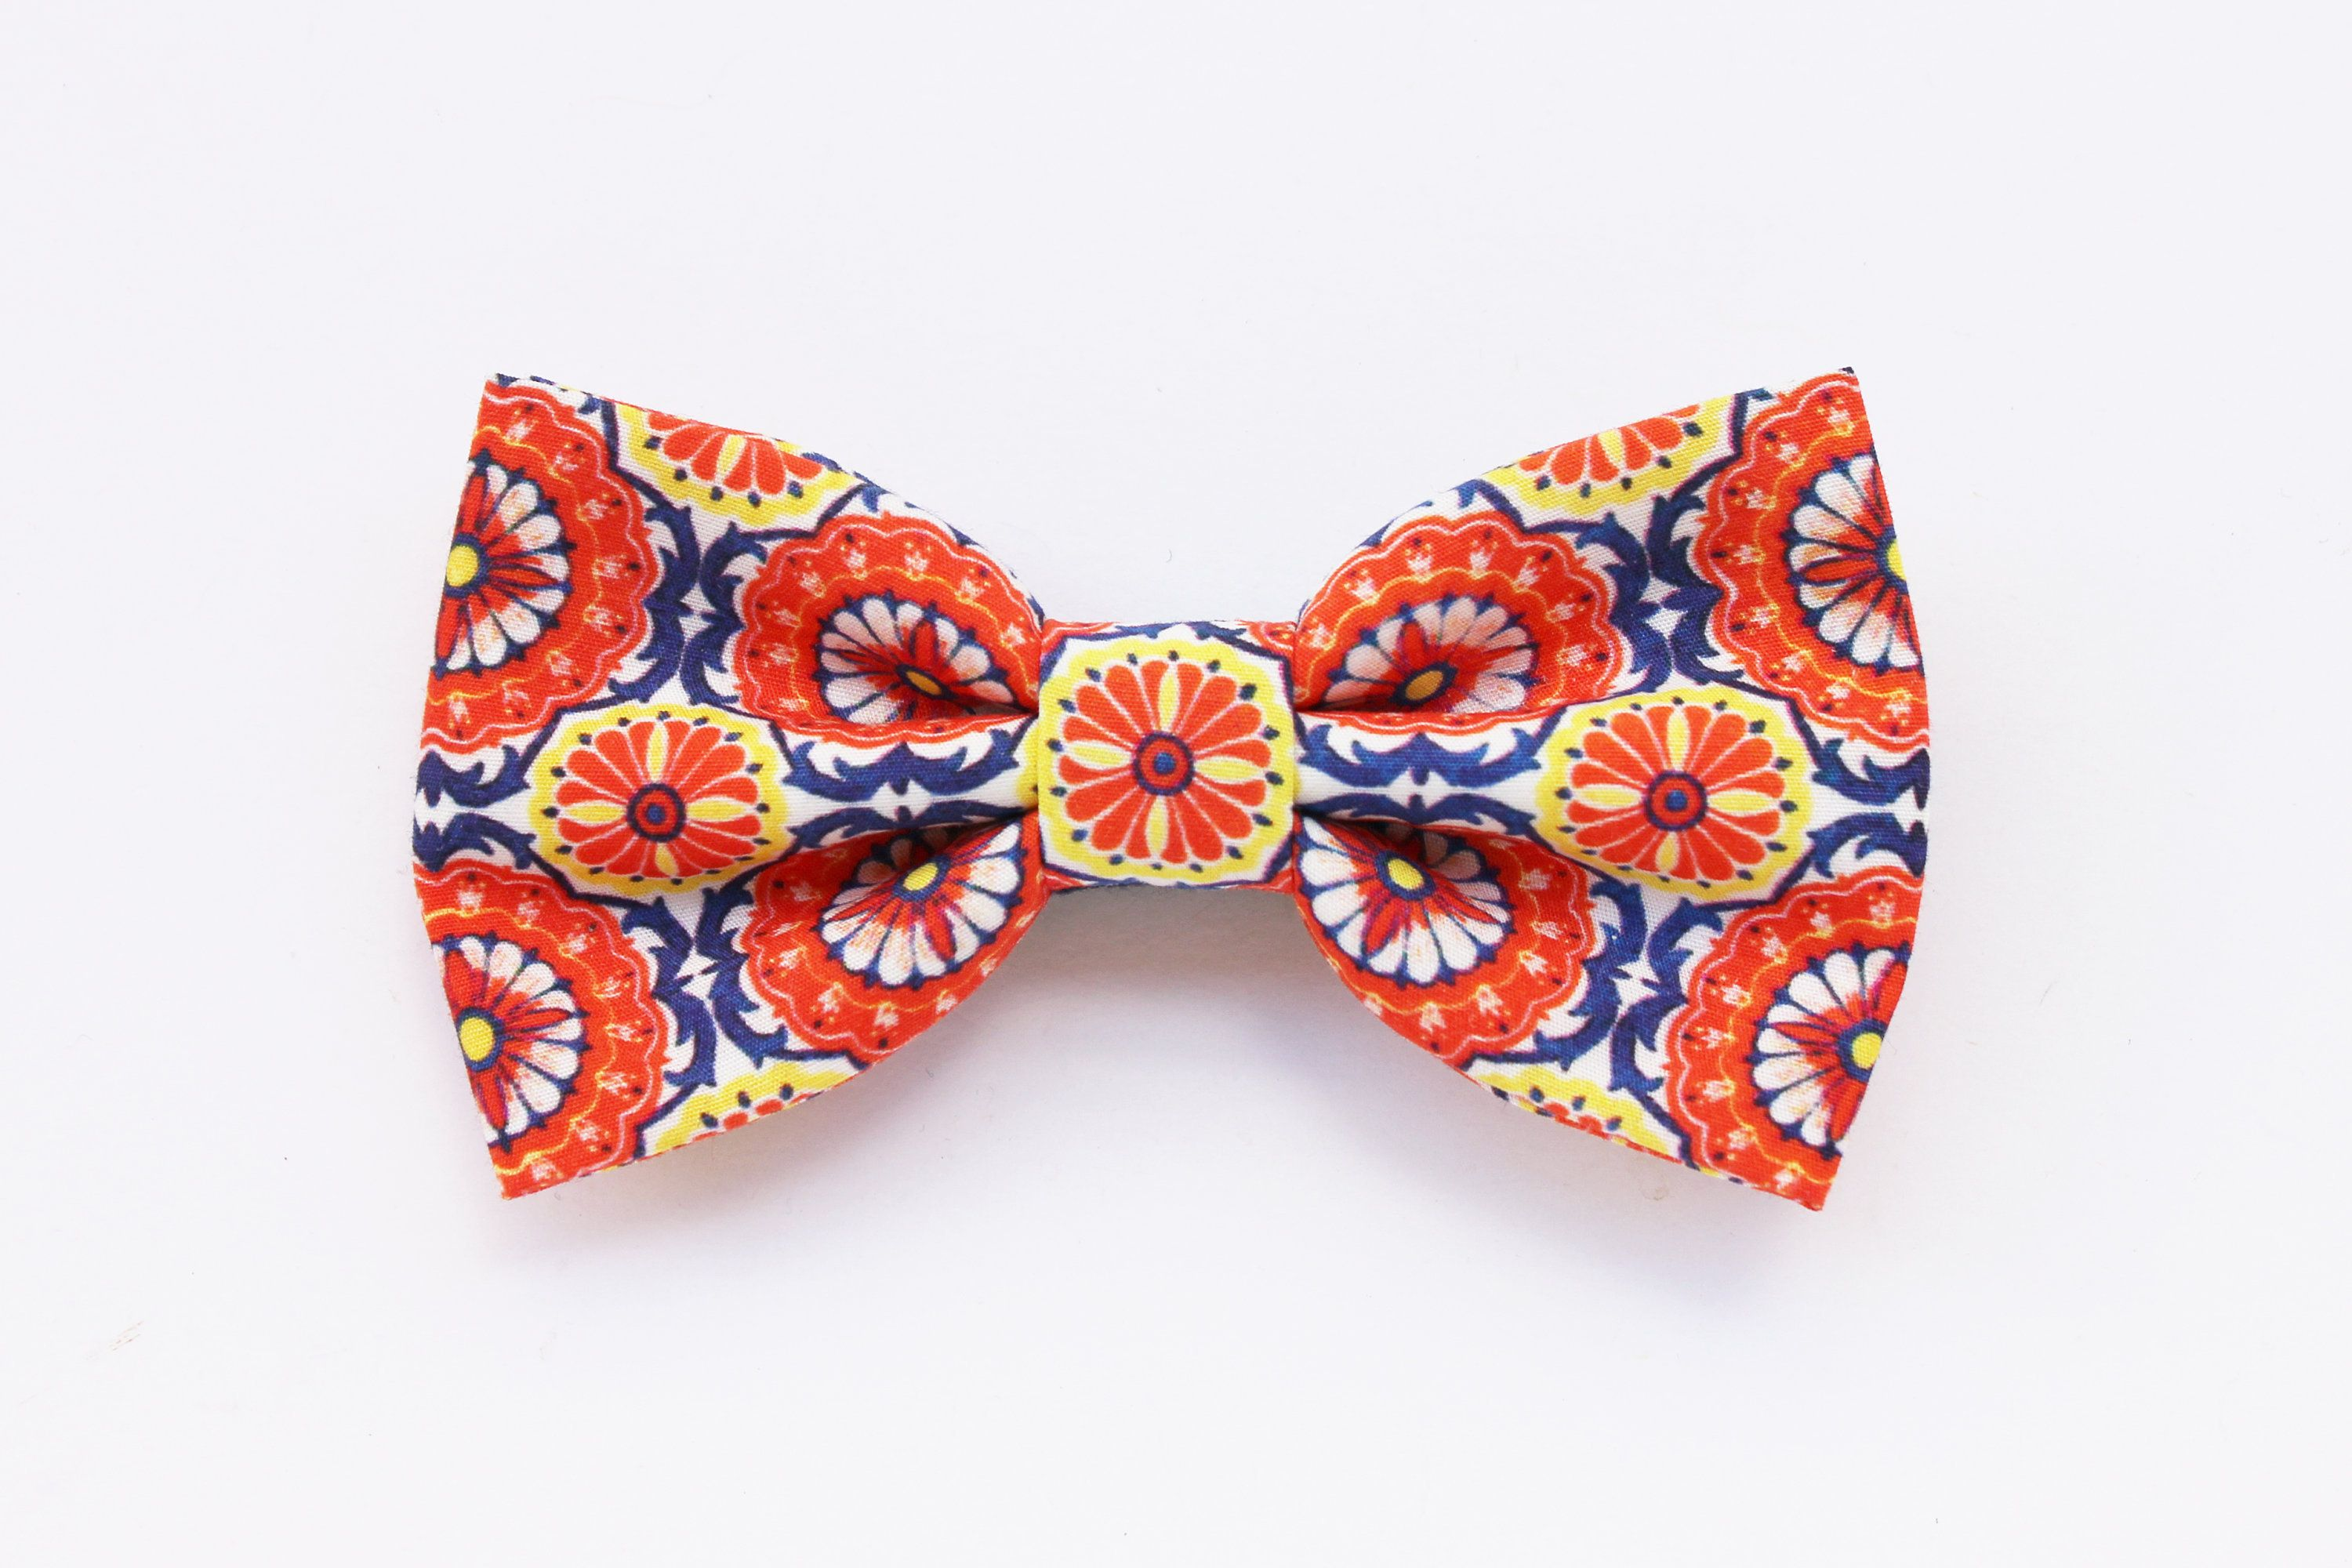 Floral print bow tie for men, majolica bow tie, tie for